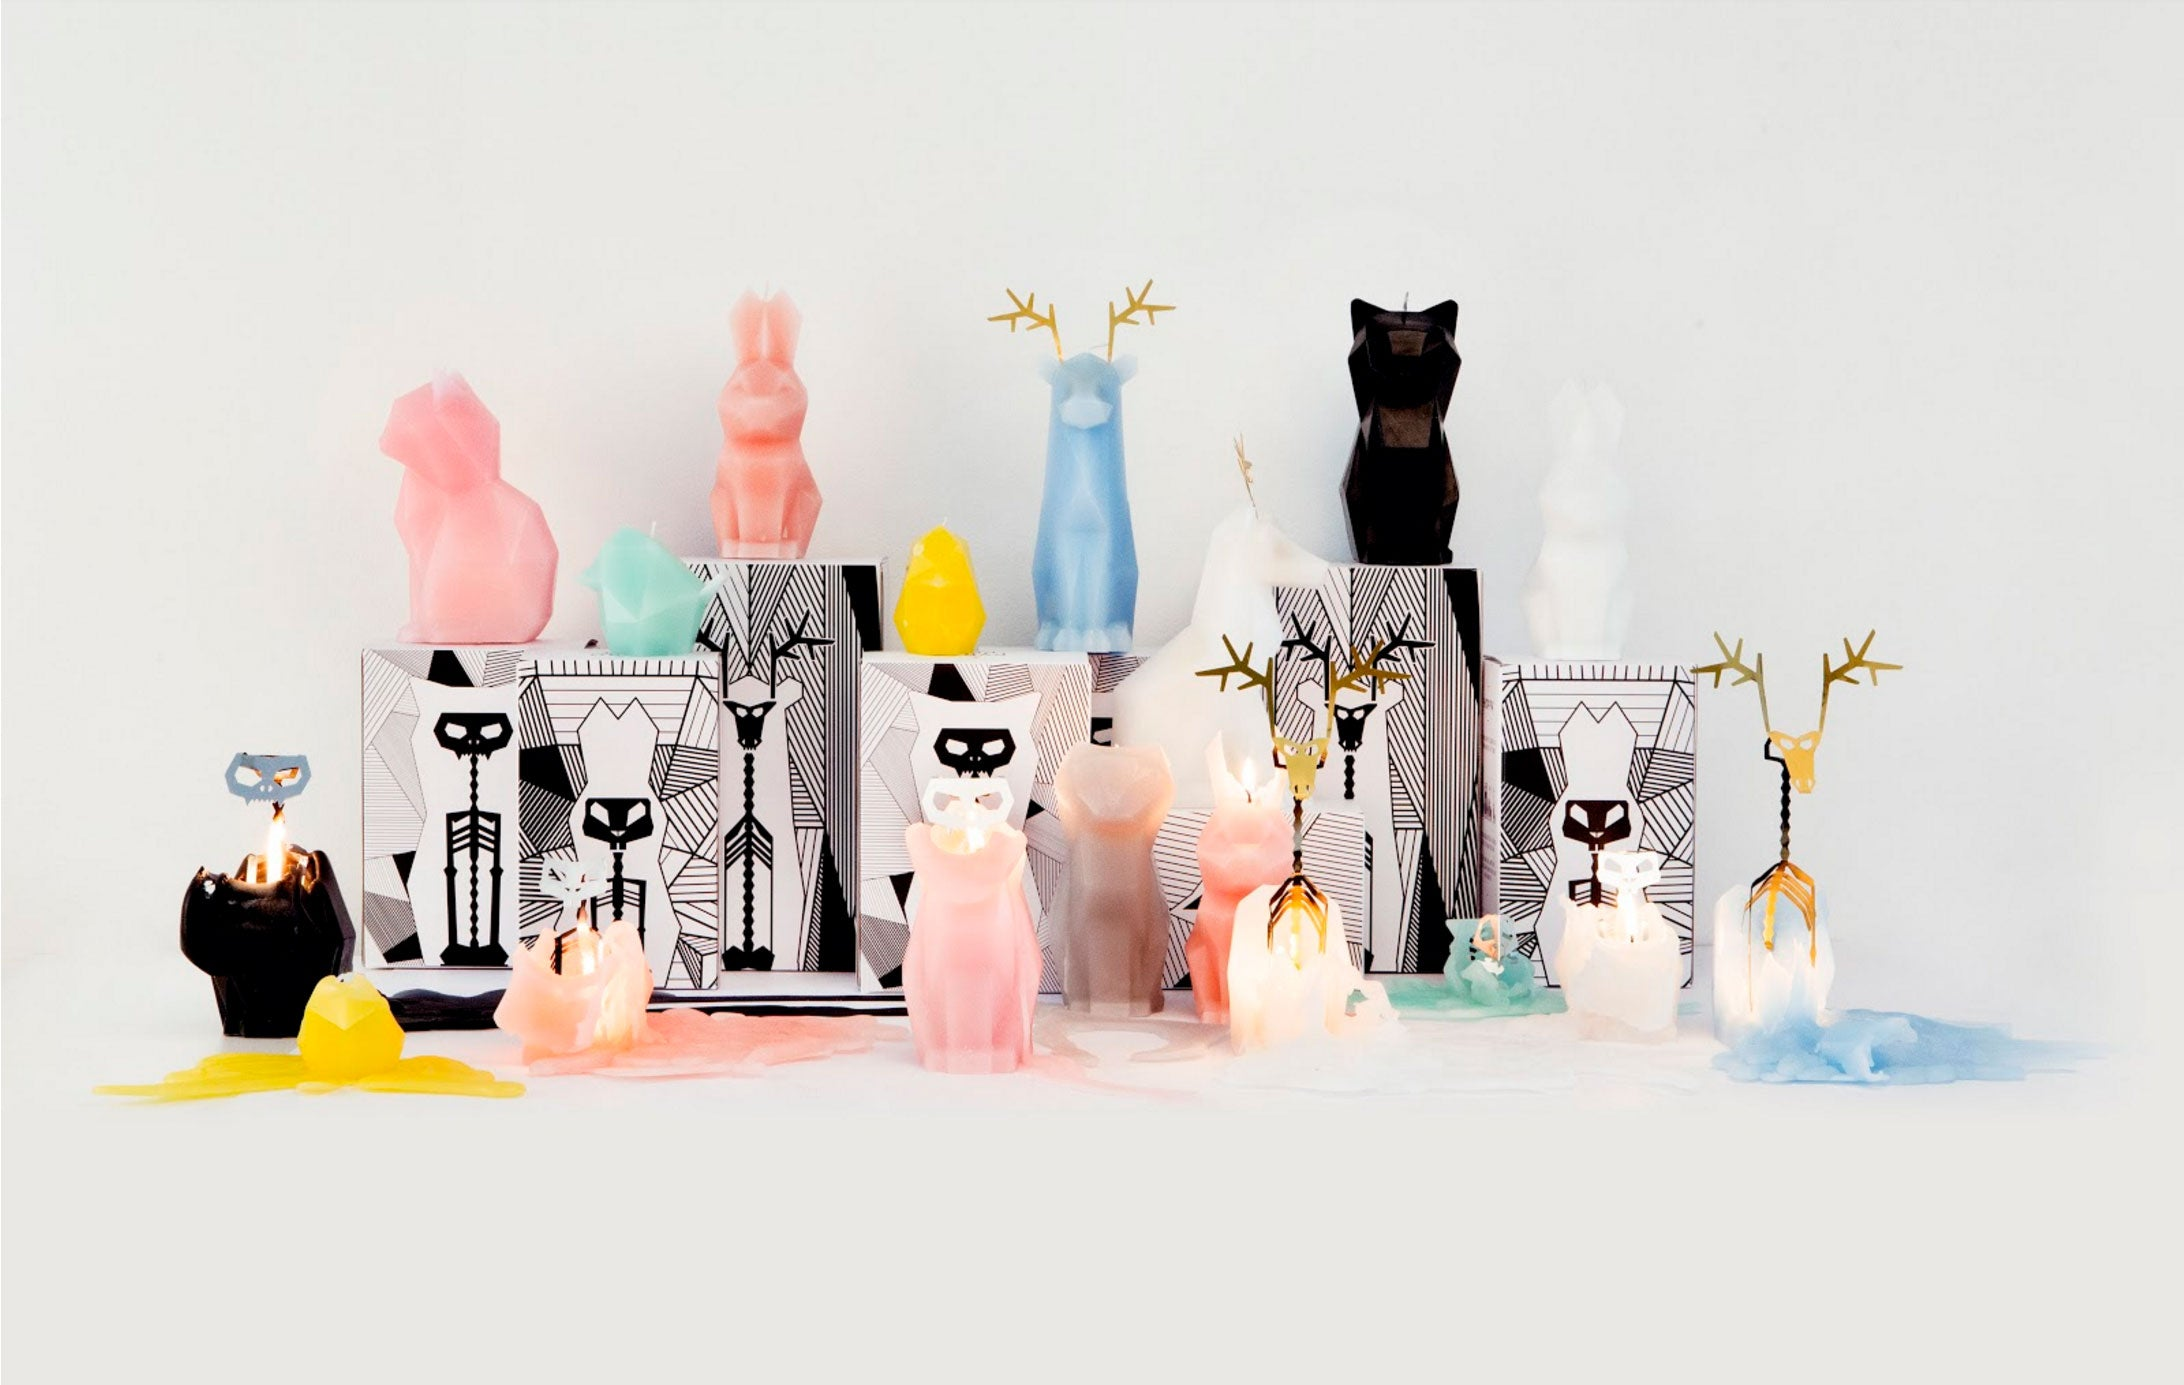 PyroPet Skeleton Candles - Kitty Cat Kisa, Dyri Reindeer, Hoppa bunny rabbit, Bibi bird